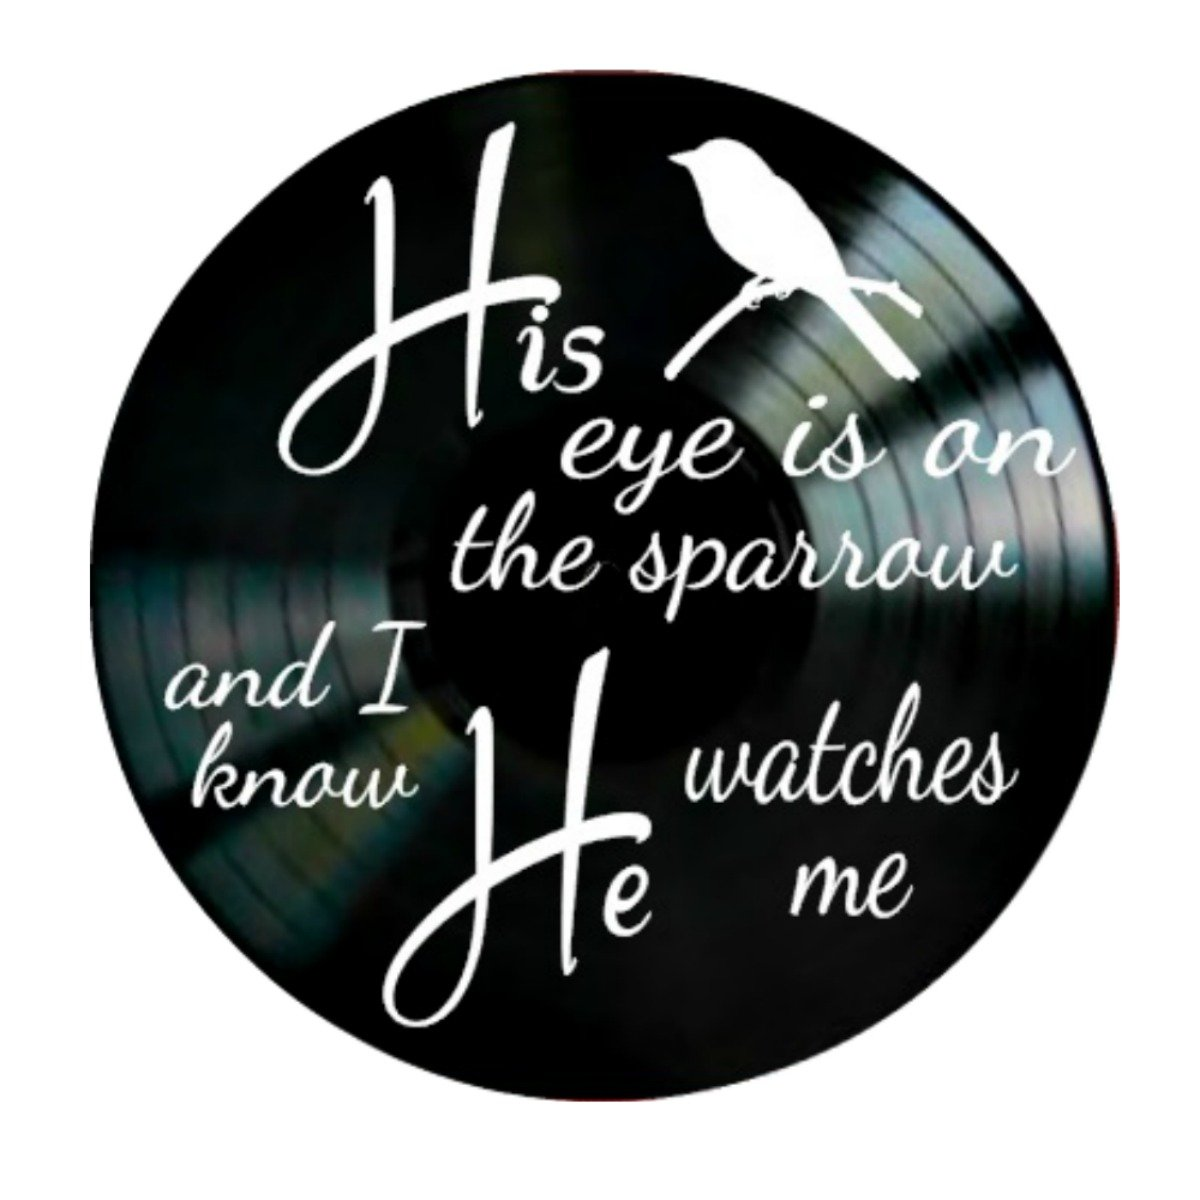 His Eye is on the Sparrow Christian song lyrics on a Vinyl Record Wall Decor by VinylRevamped